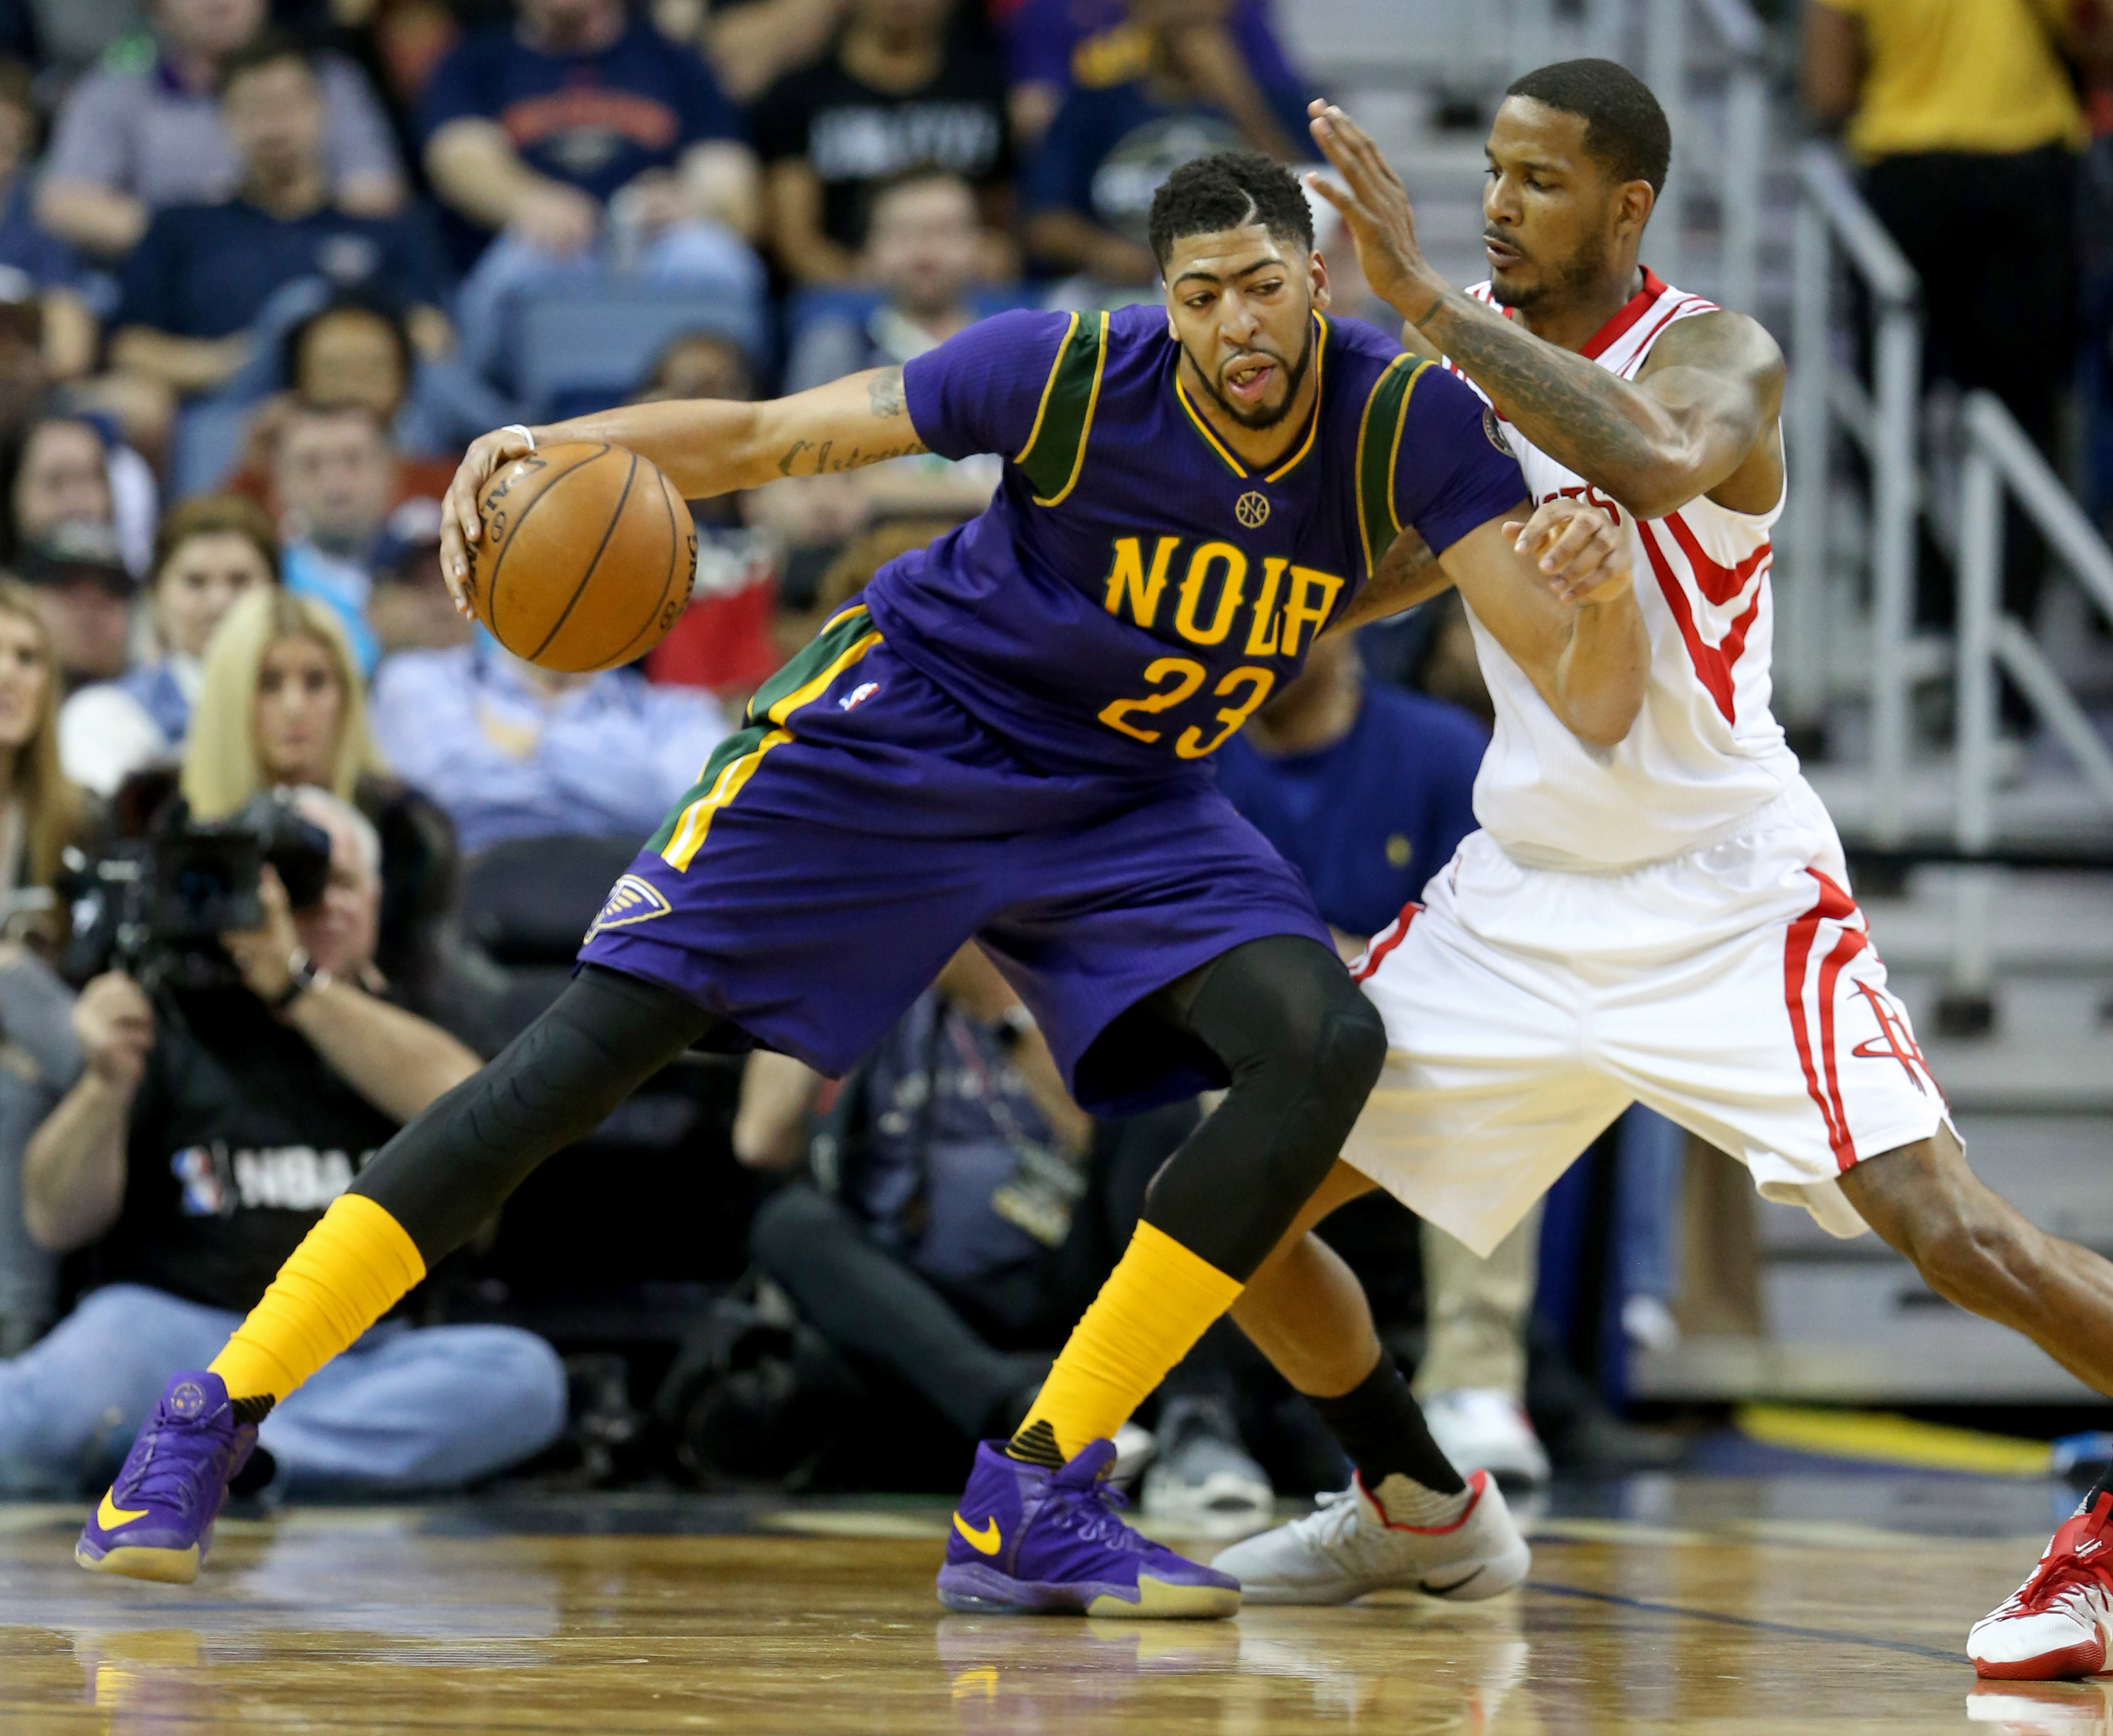 9896374-nba-houston-rockets-at-new-orleans-pelicans-1